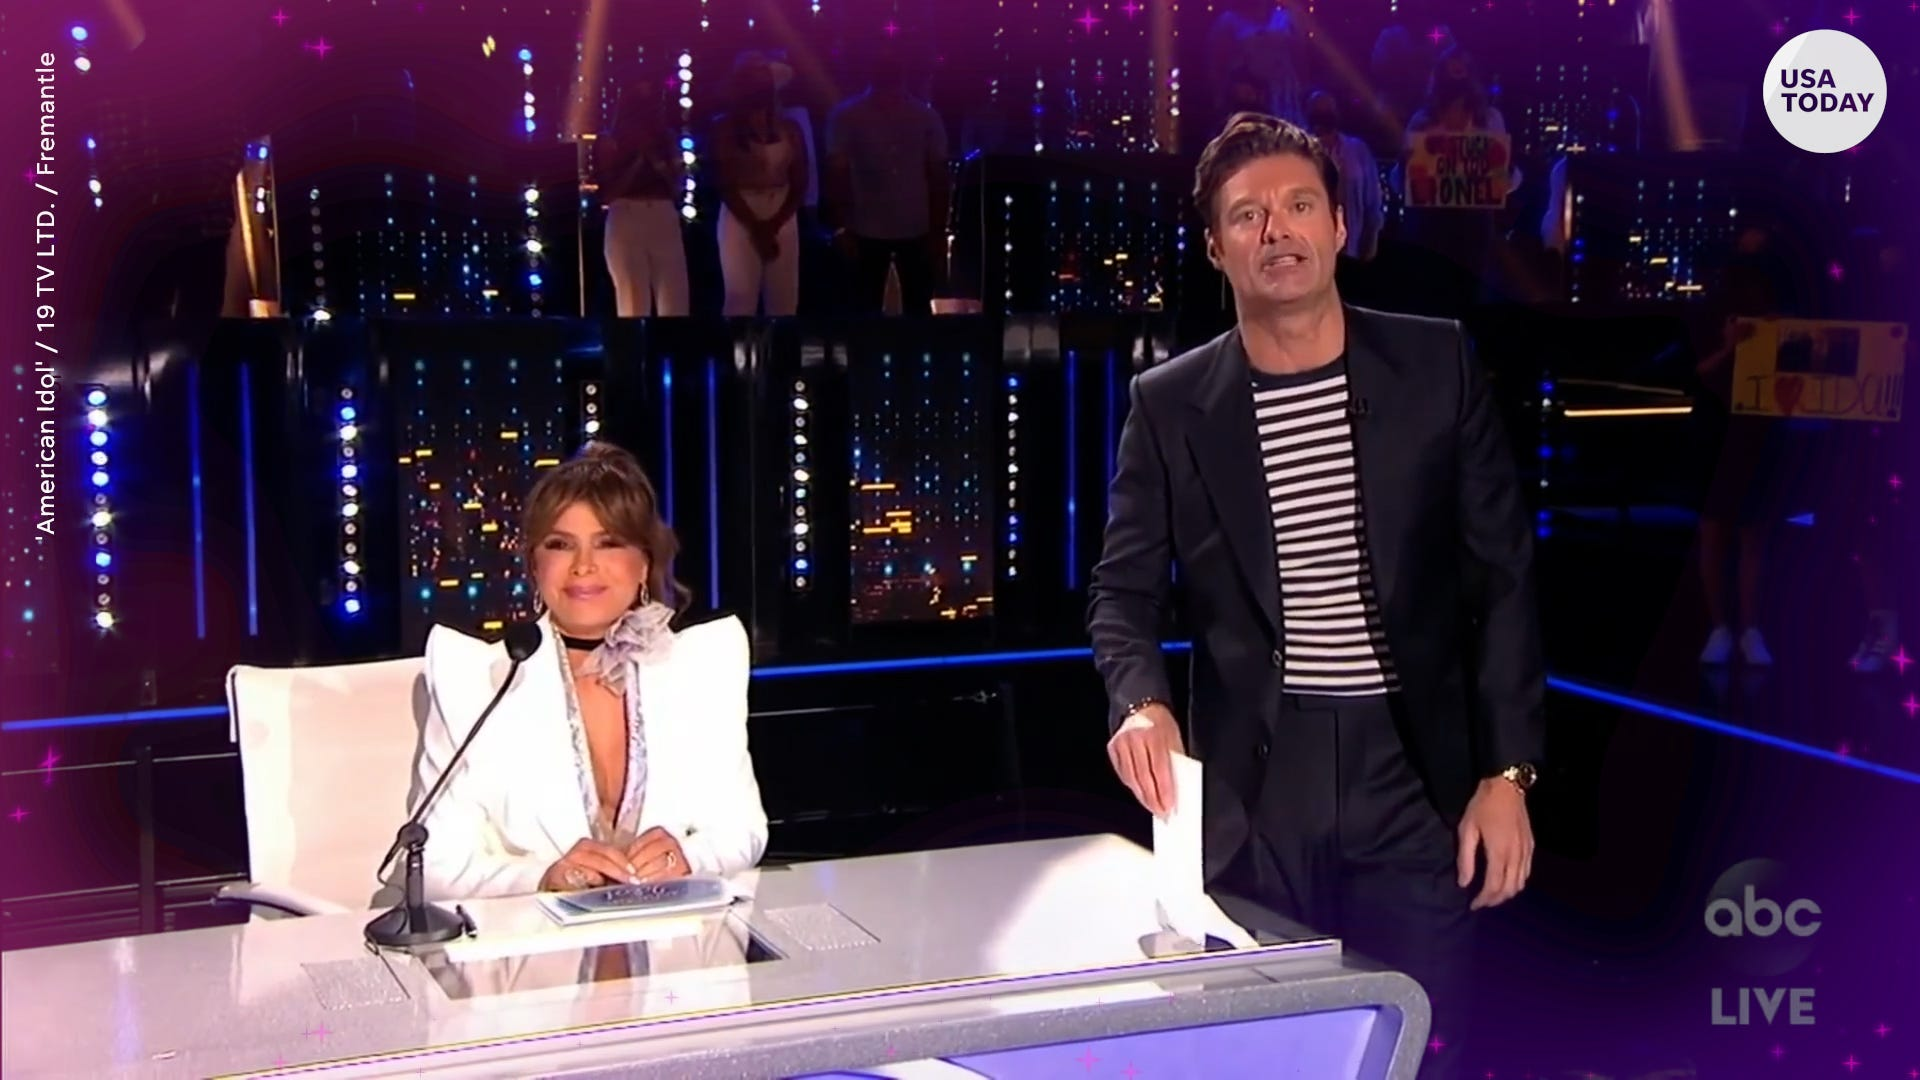 Paula Abdul returns, top contestant drops out in the first live 'American Idol' of 2021